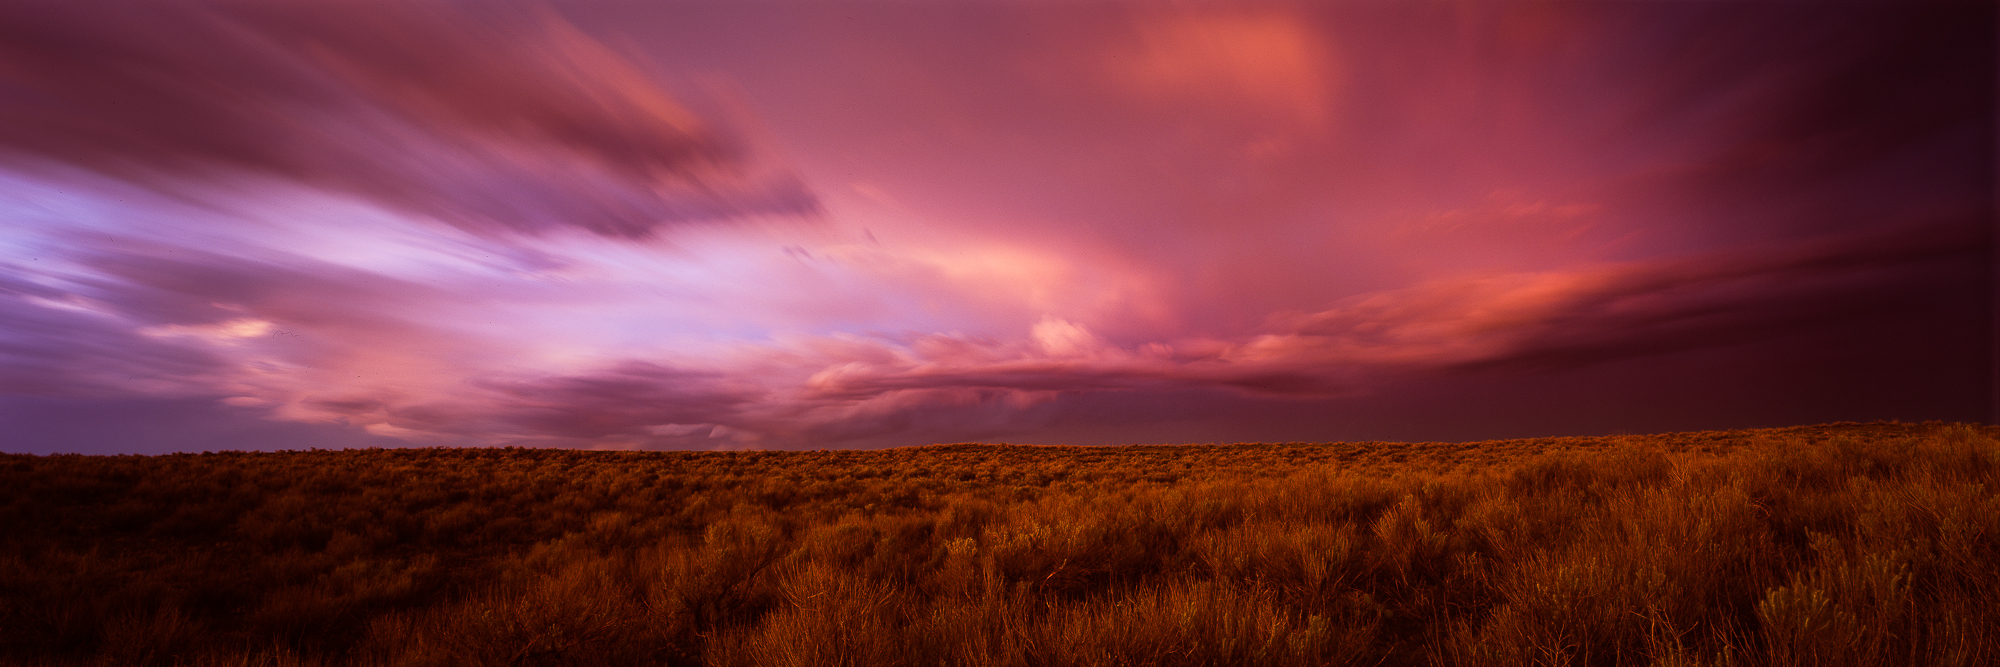 The sage brush on the Kansas prairie glows with the light of the sunset as a storm departs at highway speeds.